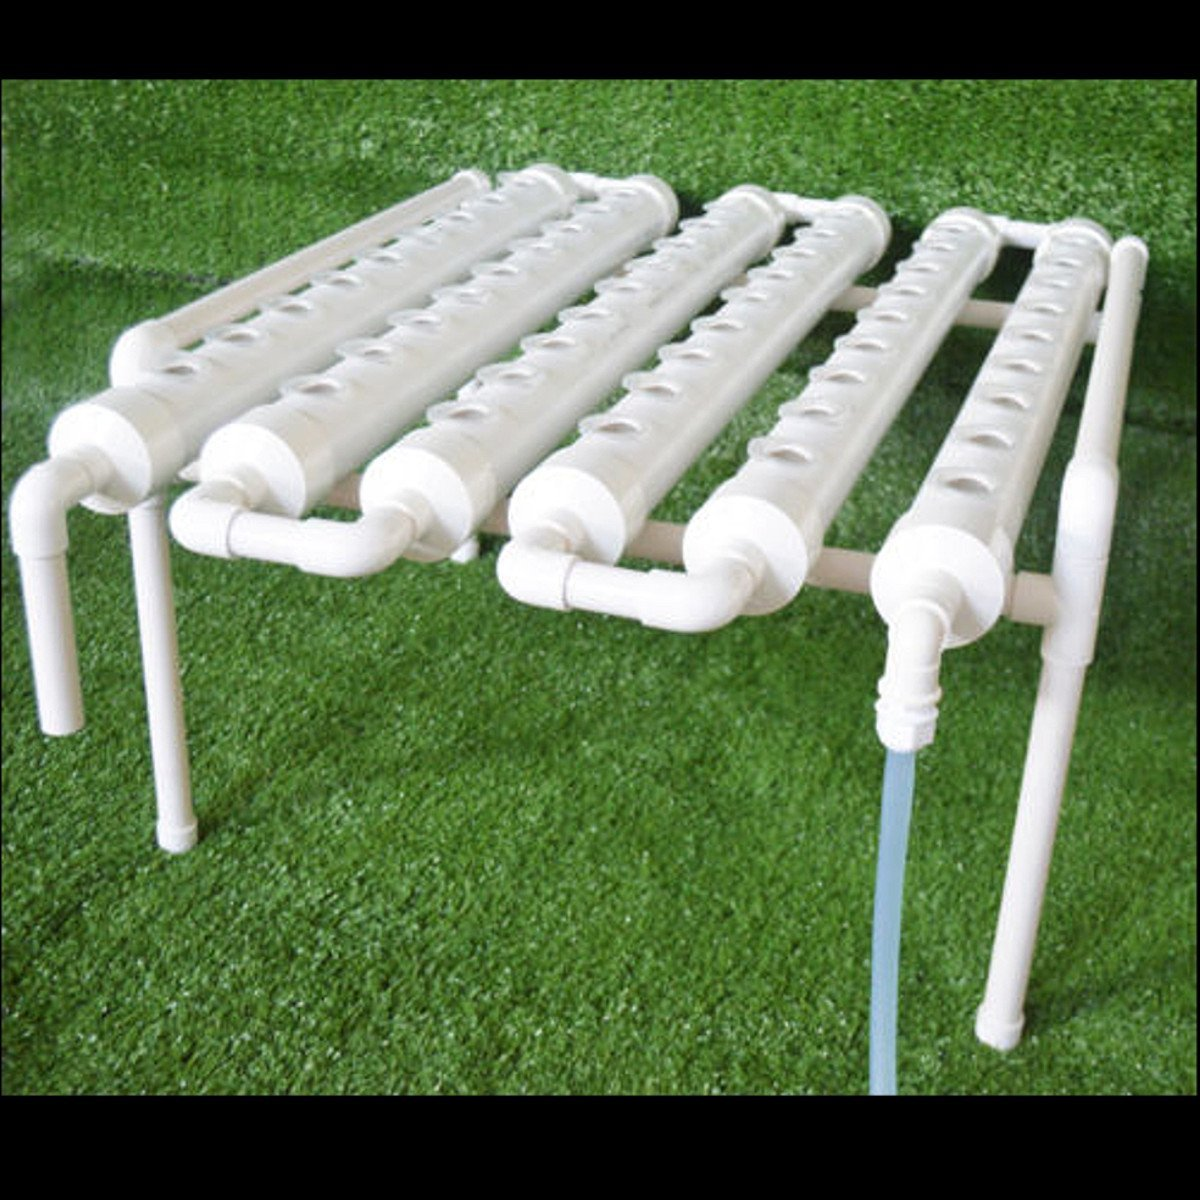 54 Holes Hydroponic Piping Site Grow Kit for Deep Water